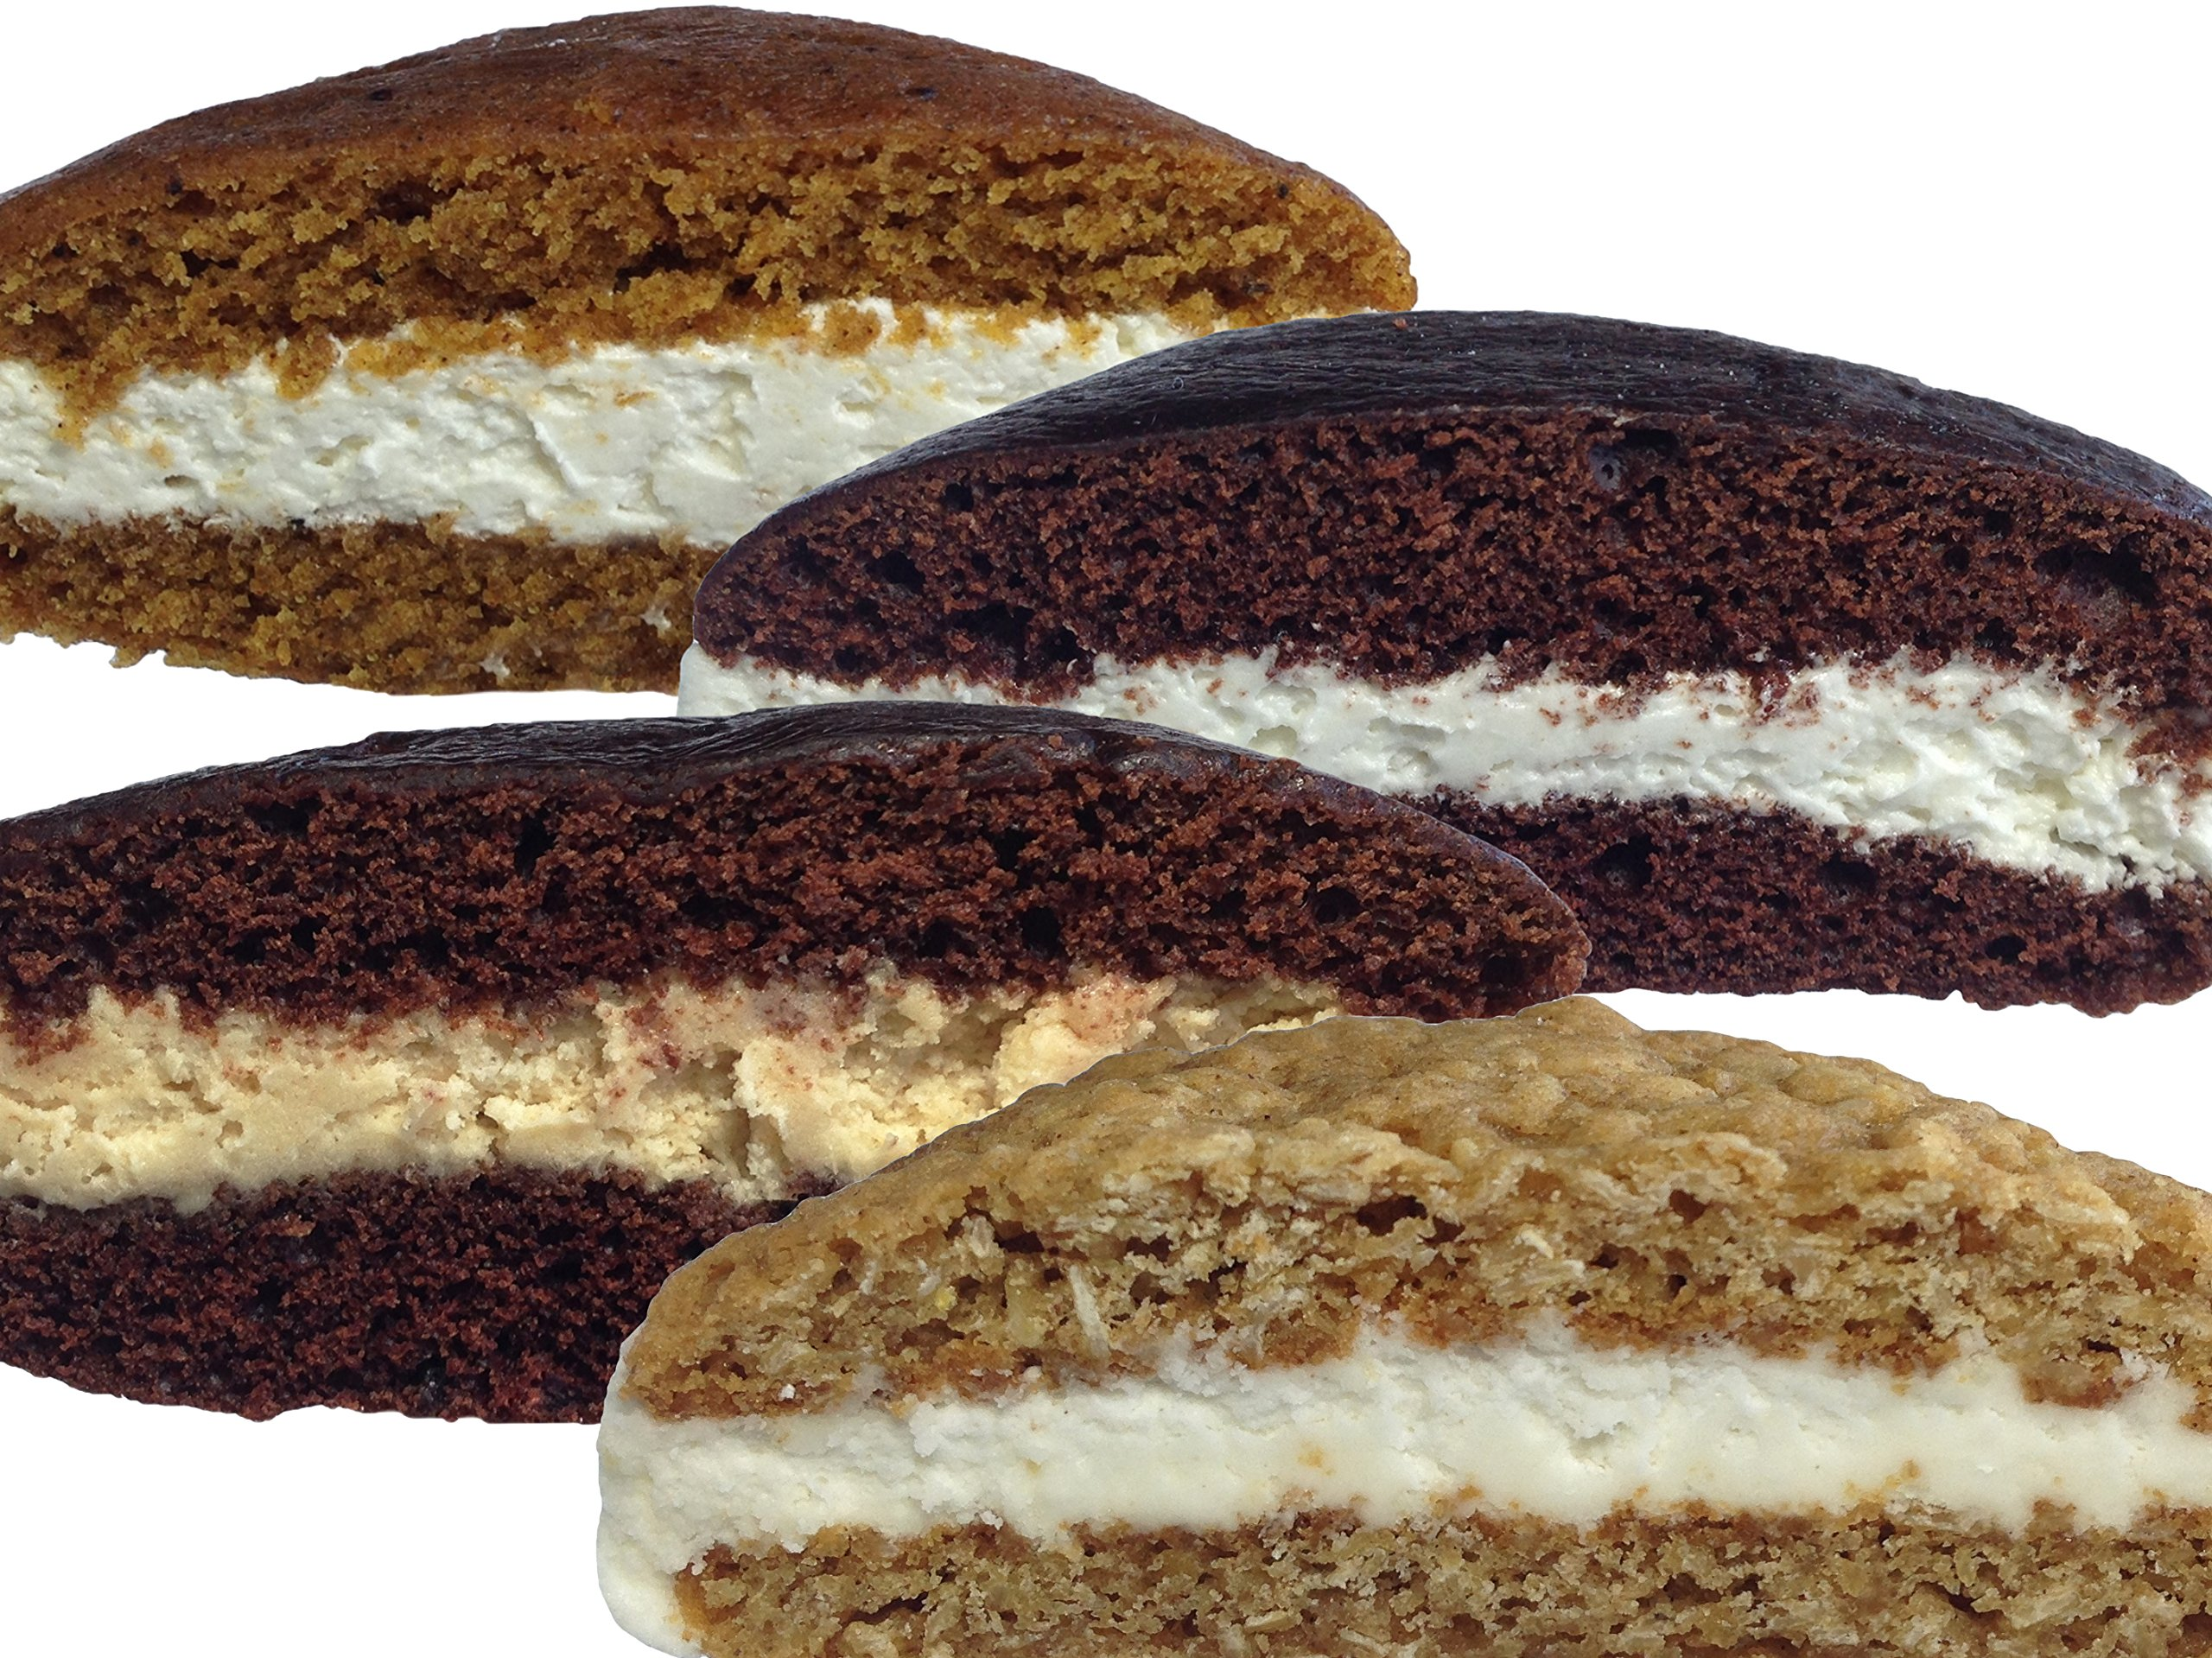 Bird-in-Hand Bake Shop Homemade Whoopie Pies, Variety Pack, Favorite Amish Food (Pack of 24) by AmishTastes